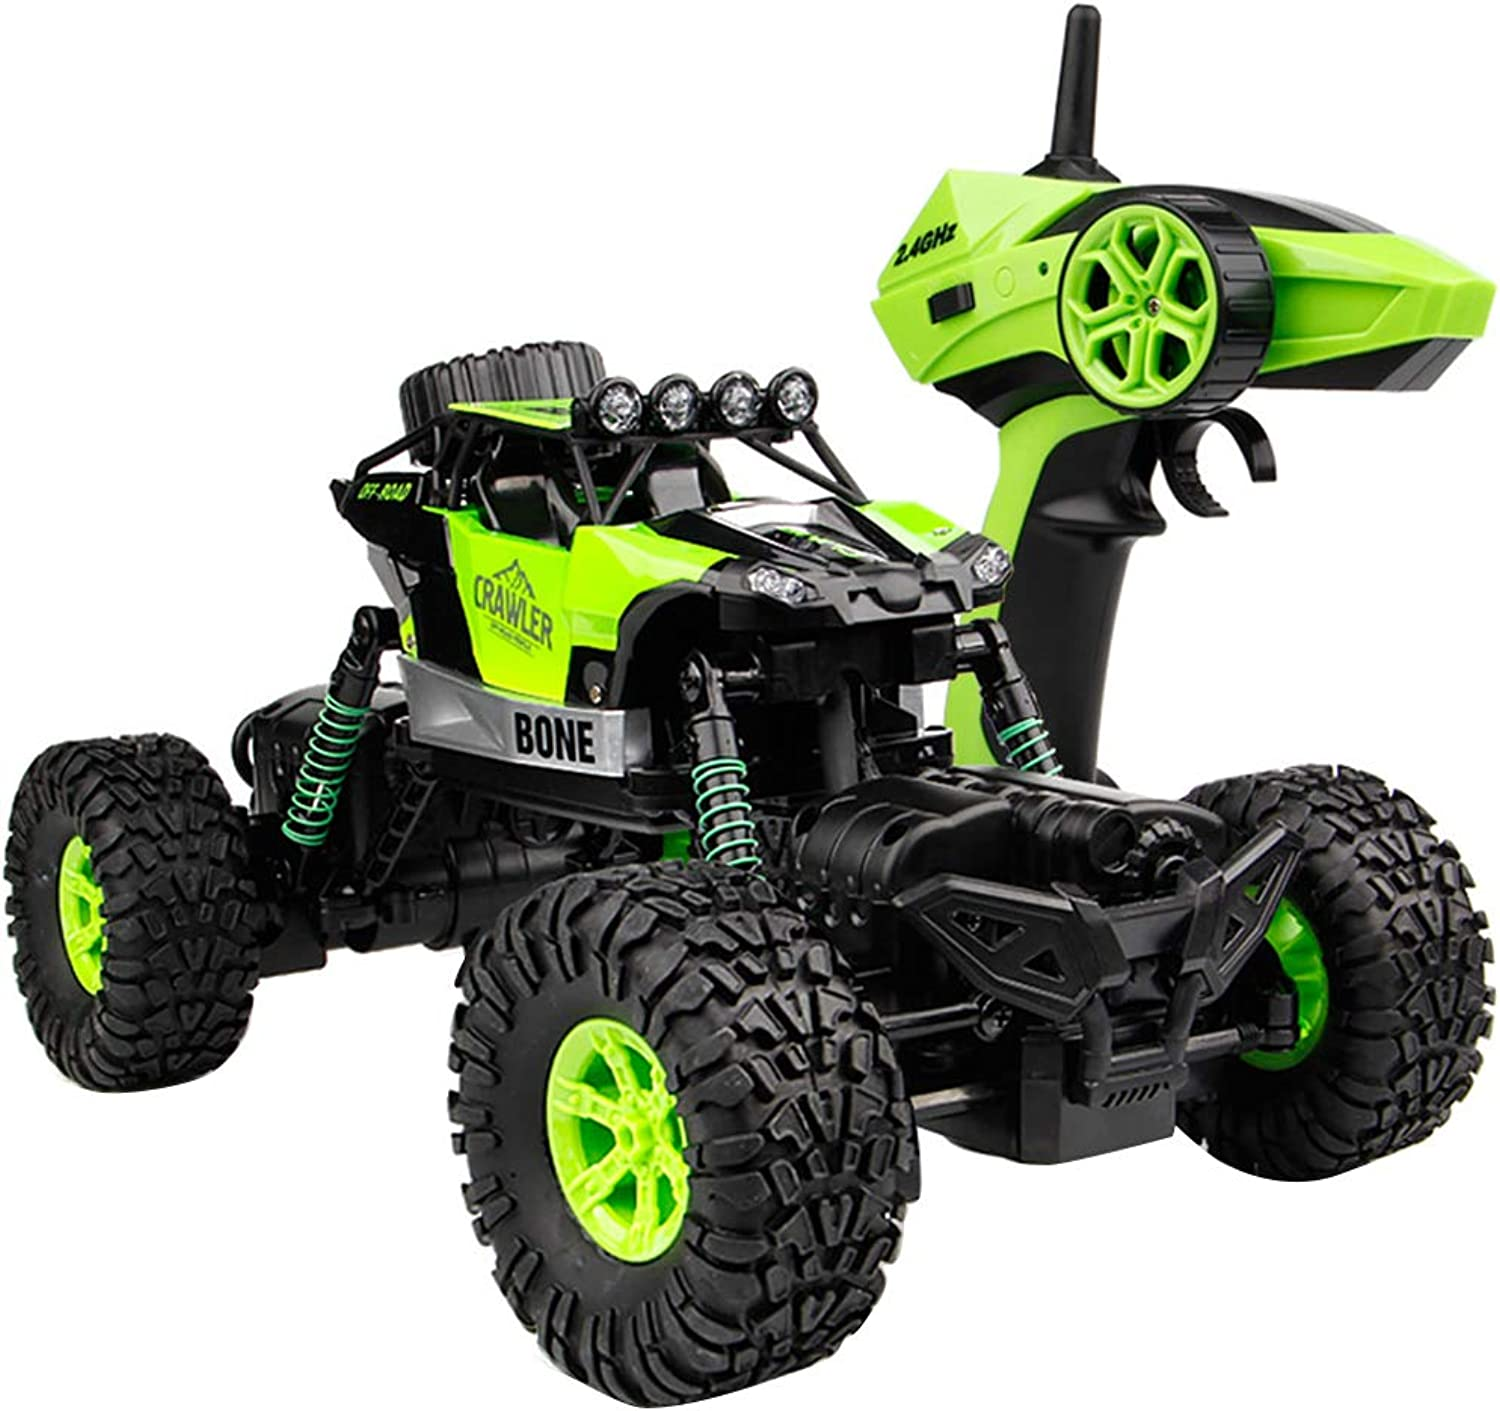 Honey MoMoRC Car Toy,2.4GHz 4WD RC Car Rock Crawler Waterproof Climber Off Road Vehicle Light Toy  Green